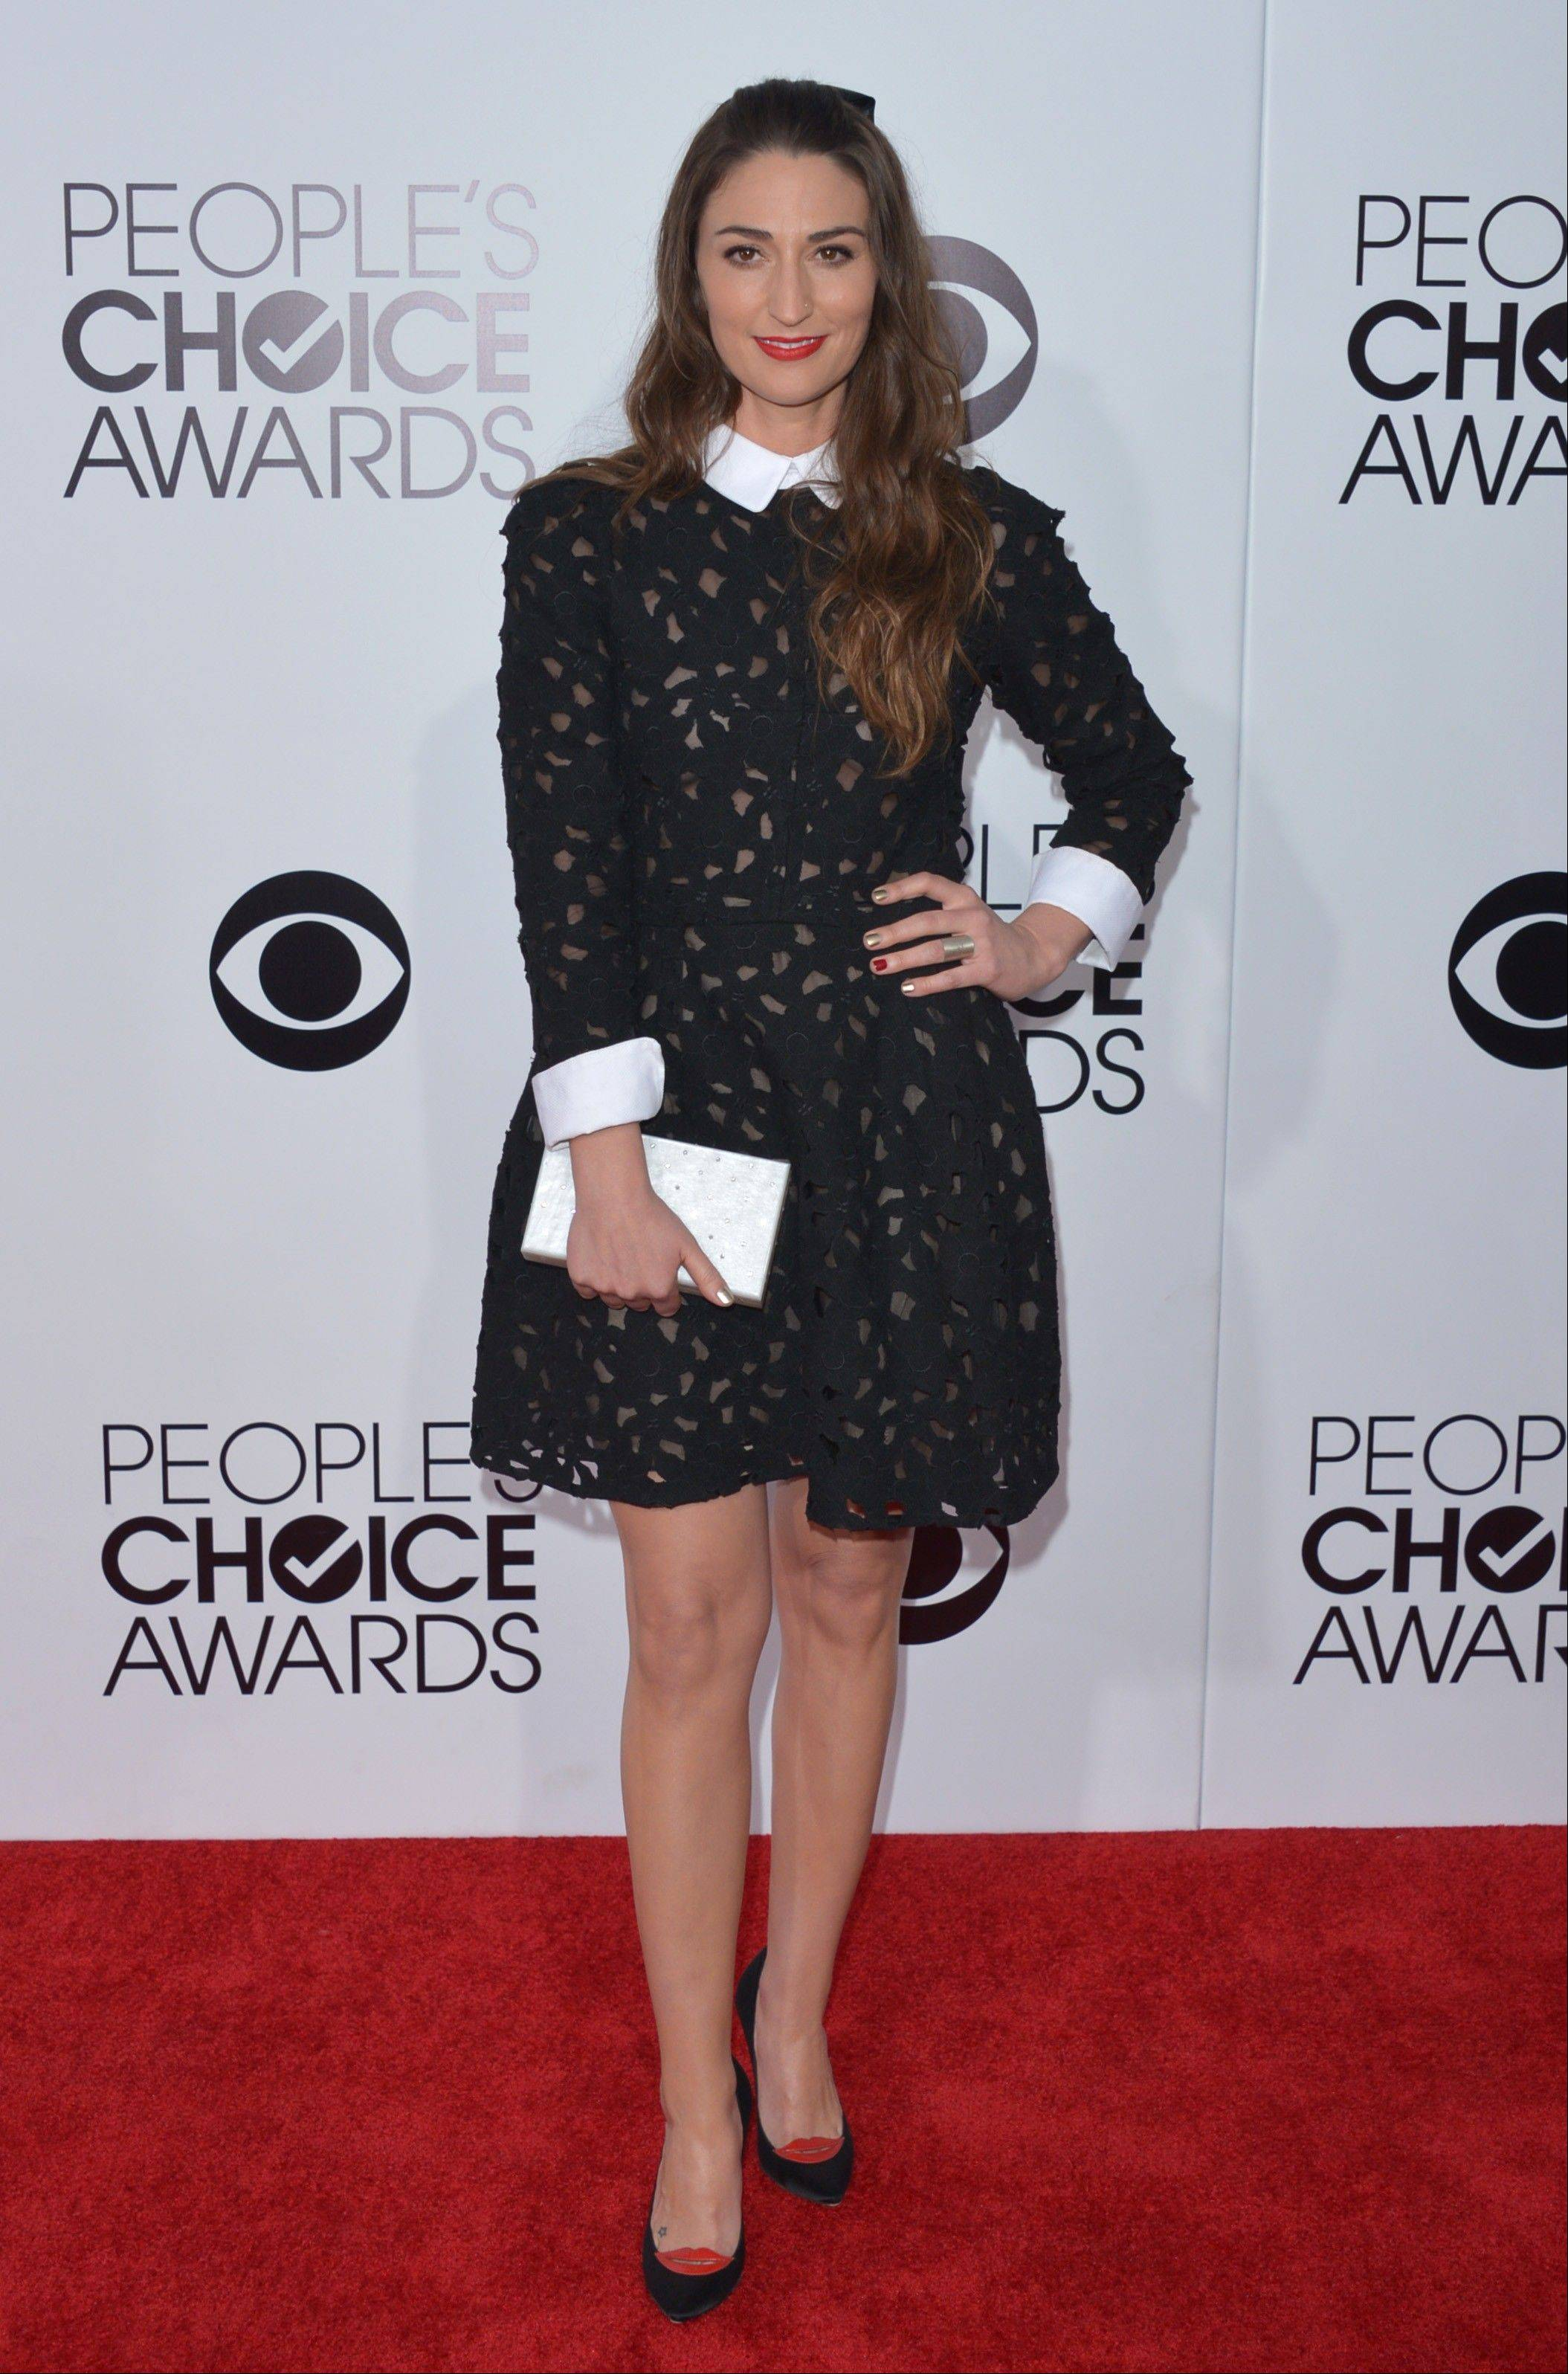 Associated PressSara Bareilles arrives at the 40th annual People's Choice Awards at Nokia Theatre L.A. Live on Wednesday, Jan. 8, 2014, in Los Angeles.